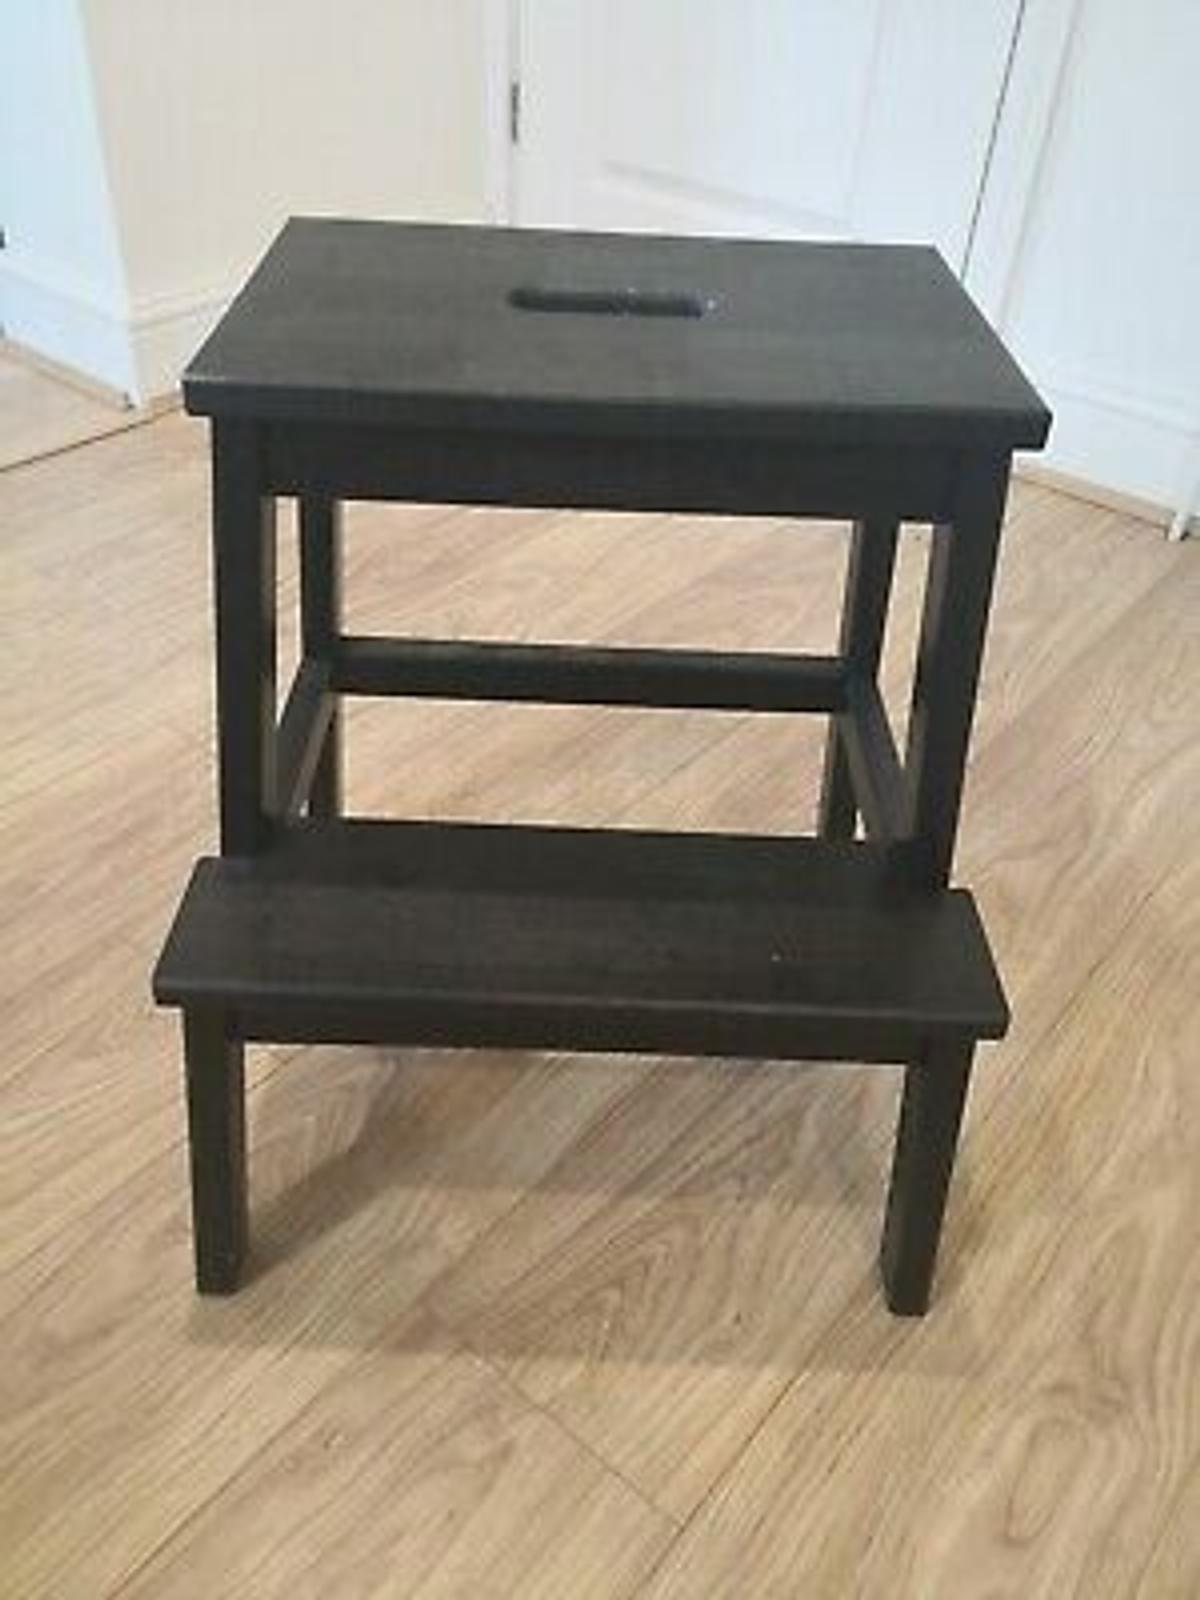 Miraculous Ikea Bekvam Step Stool Black Ibusinesslaw Wood Chair Design Ideas Ibusinesslaworg